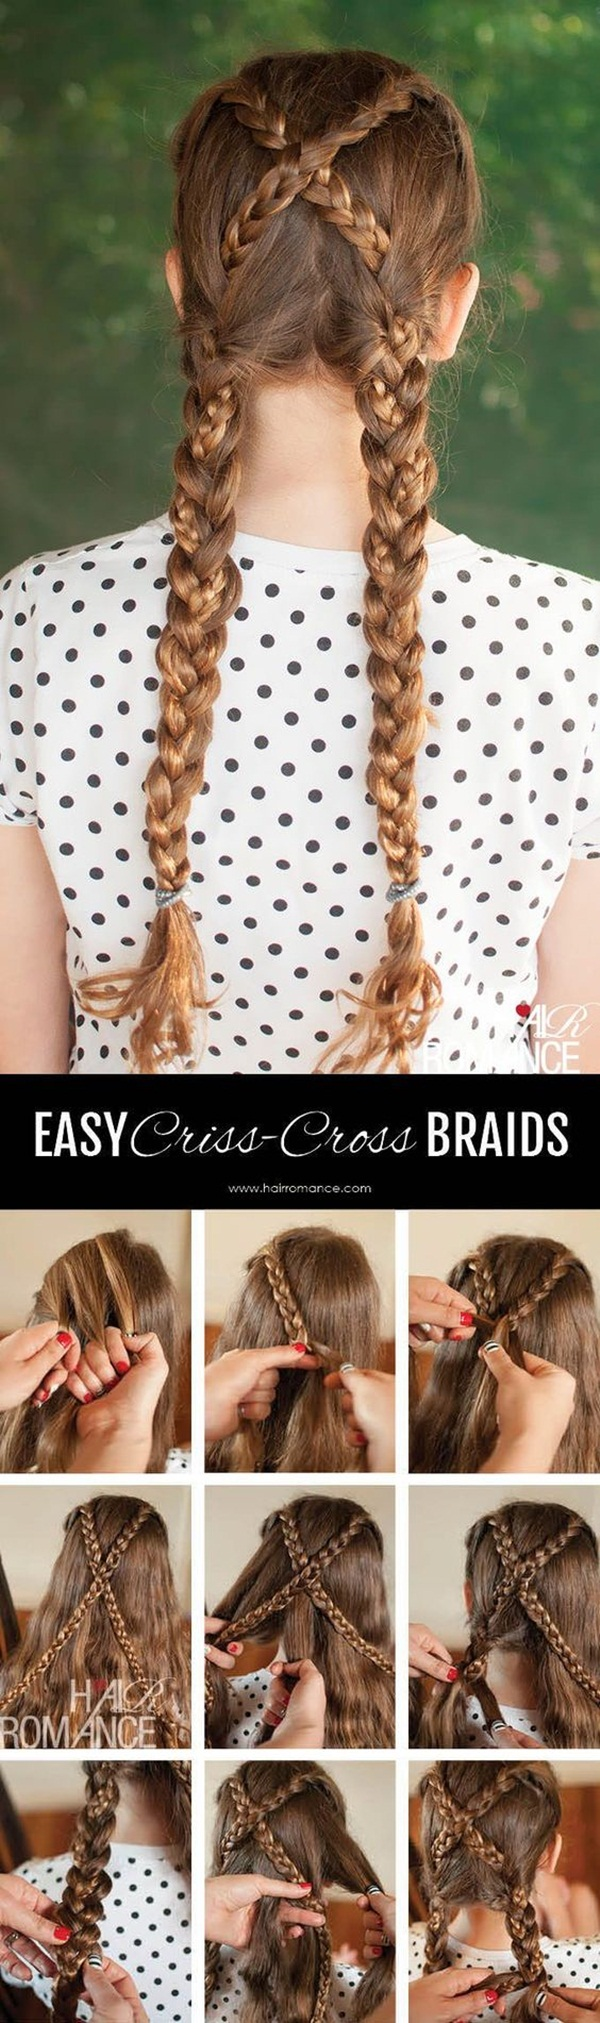 Easy Hairstyles For School (11)